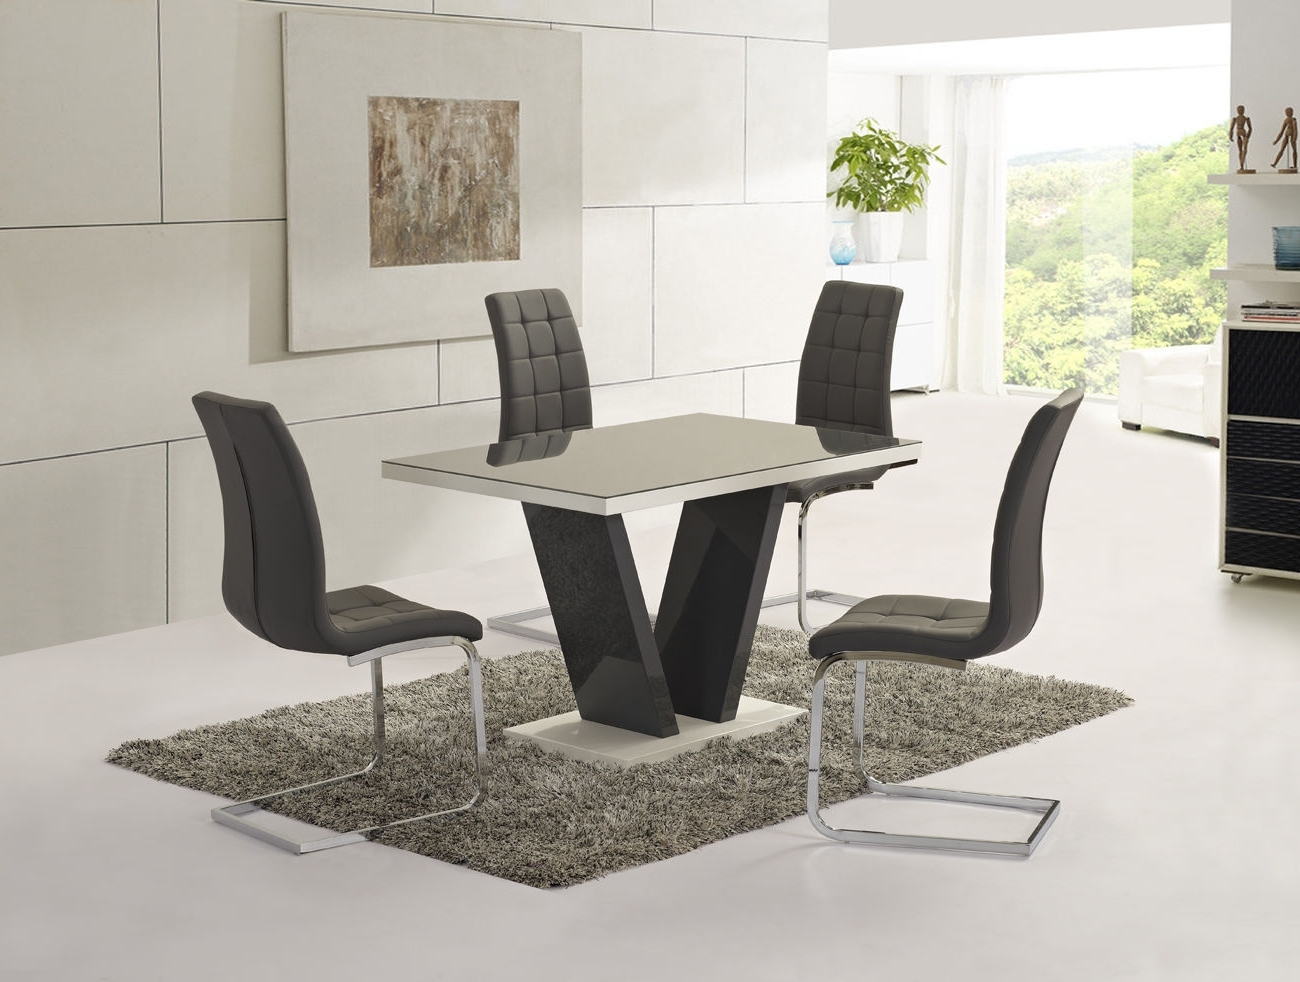 Ga Vico Gloss Grey Glass Top Designer 160Cm Dining Set – 4 6 Grey With Best And Newest White High Gloss Dining Chairs (Gallery 3 of 25)